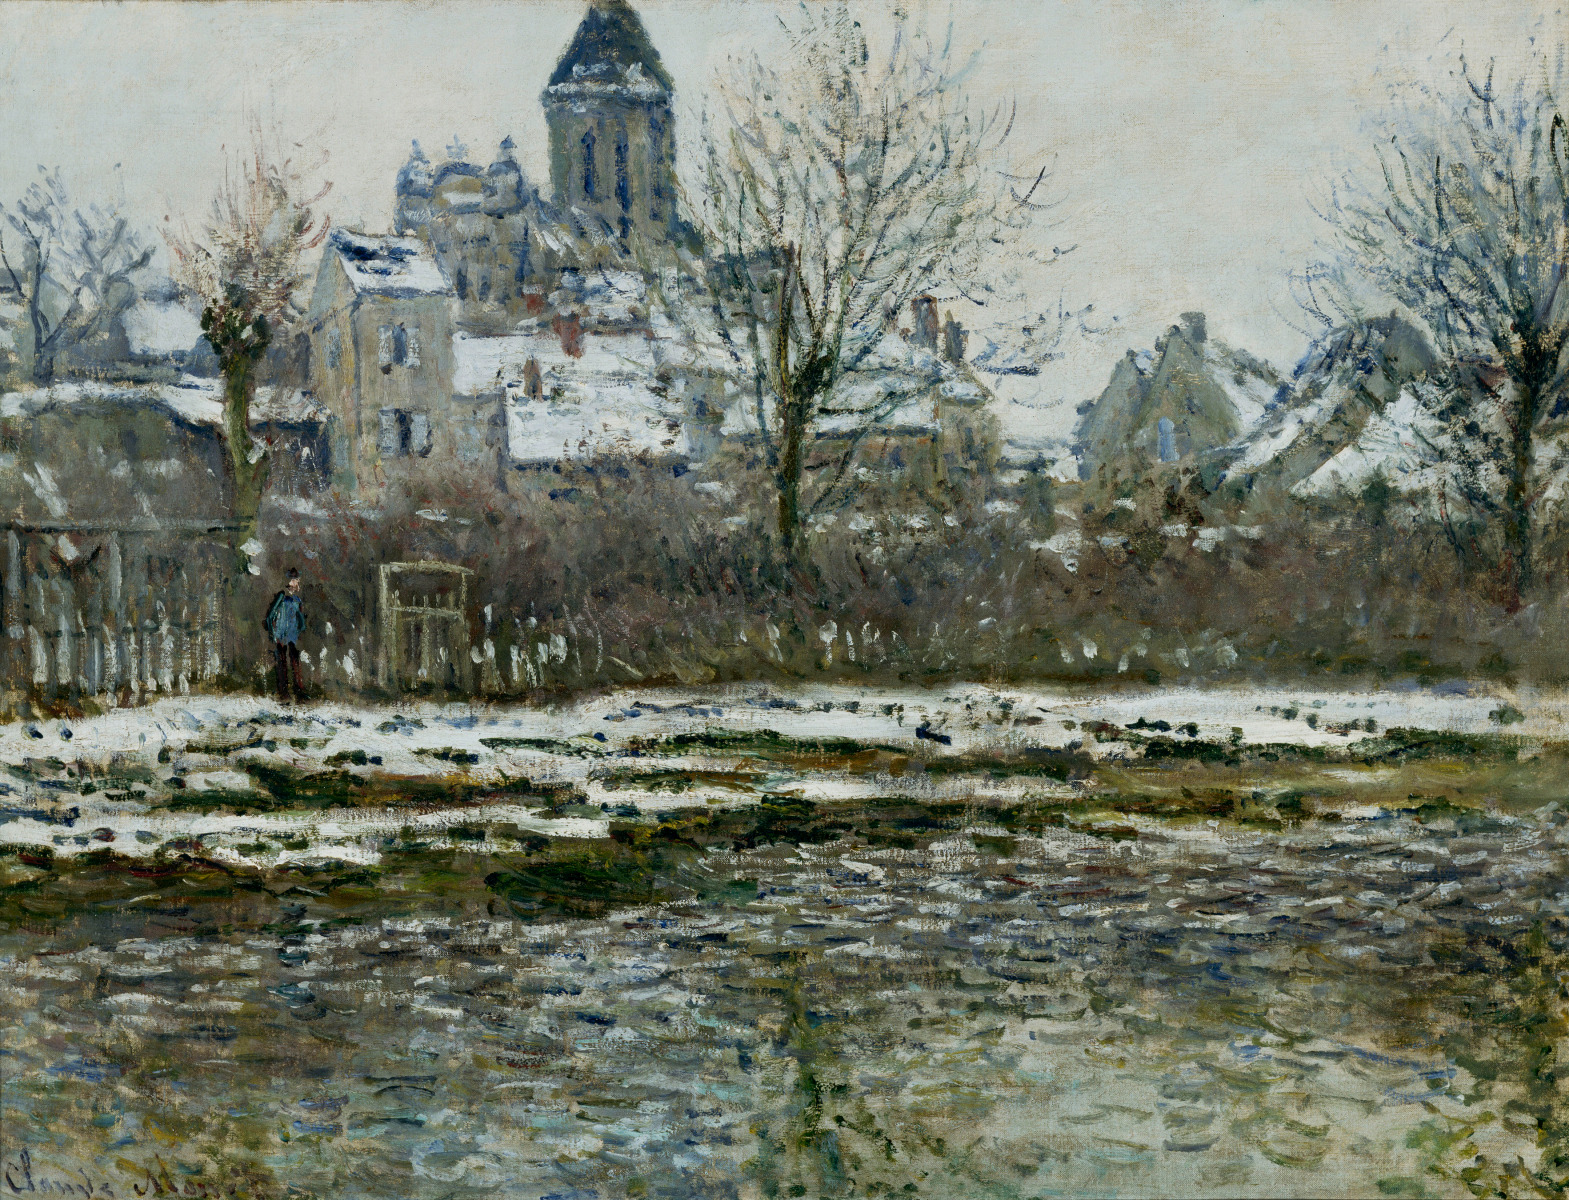 Claude Monet - The Church at Vetheuil under Snow 1879